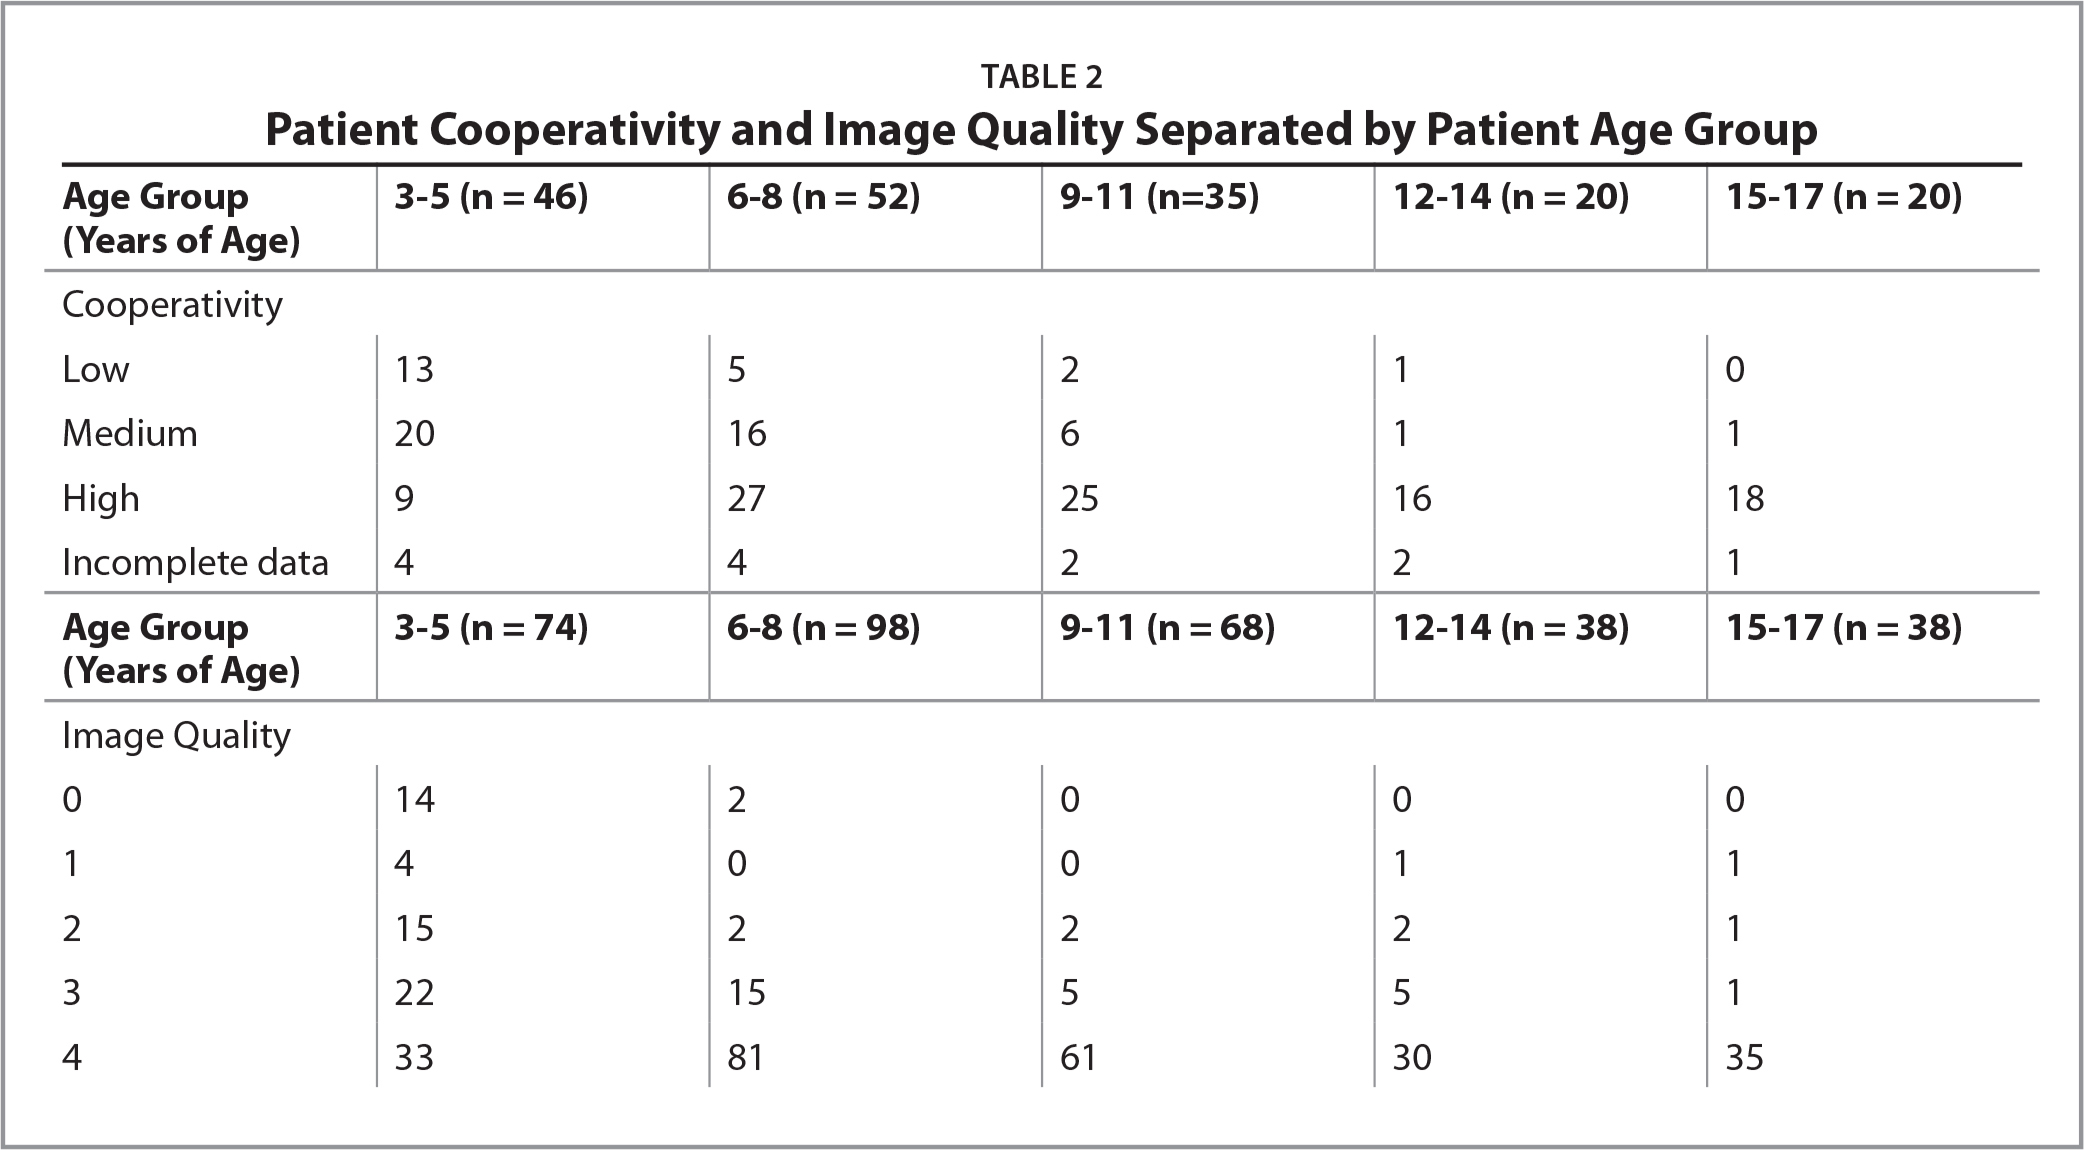 Patient Cooperativity and Image Quality Separated by Patient Age Group